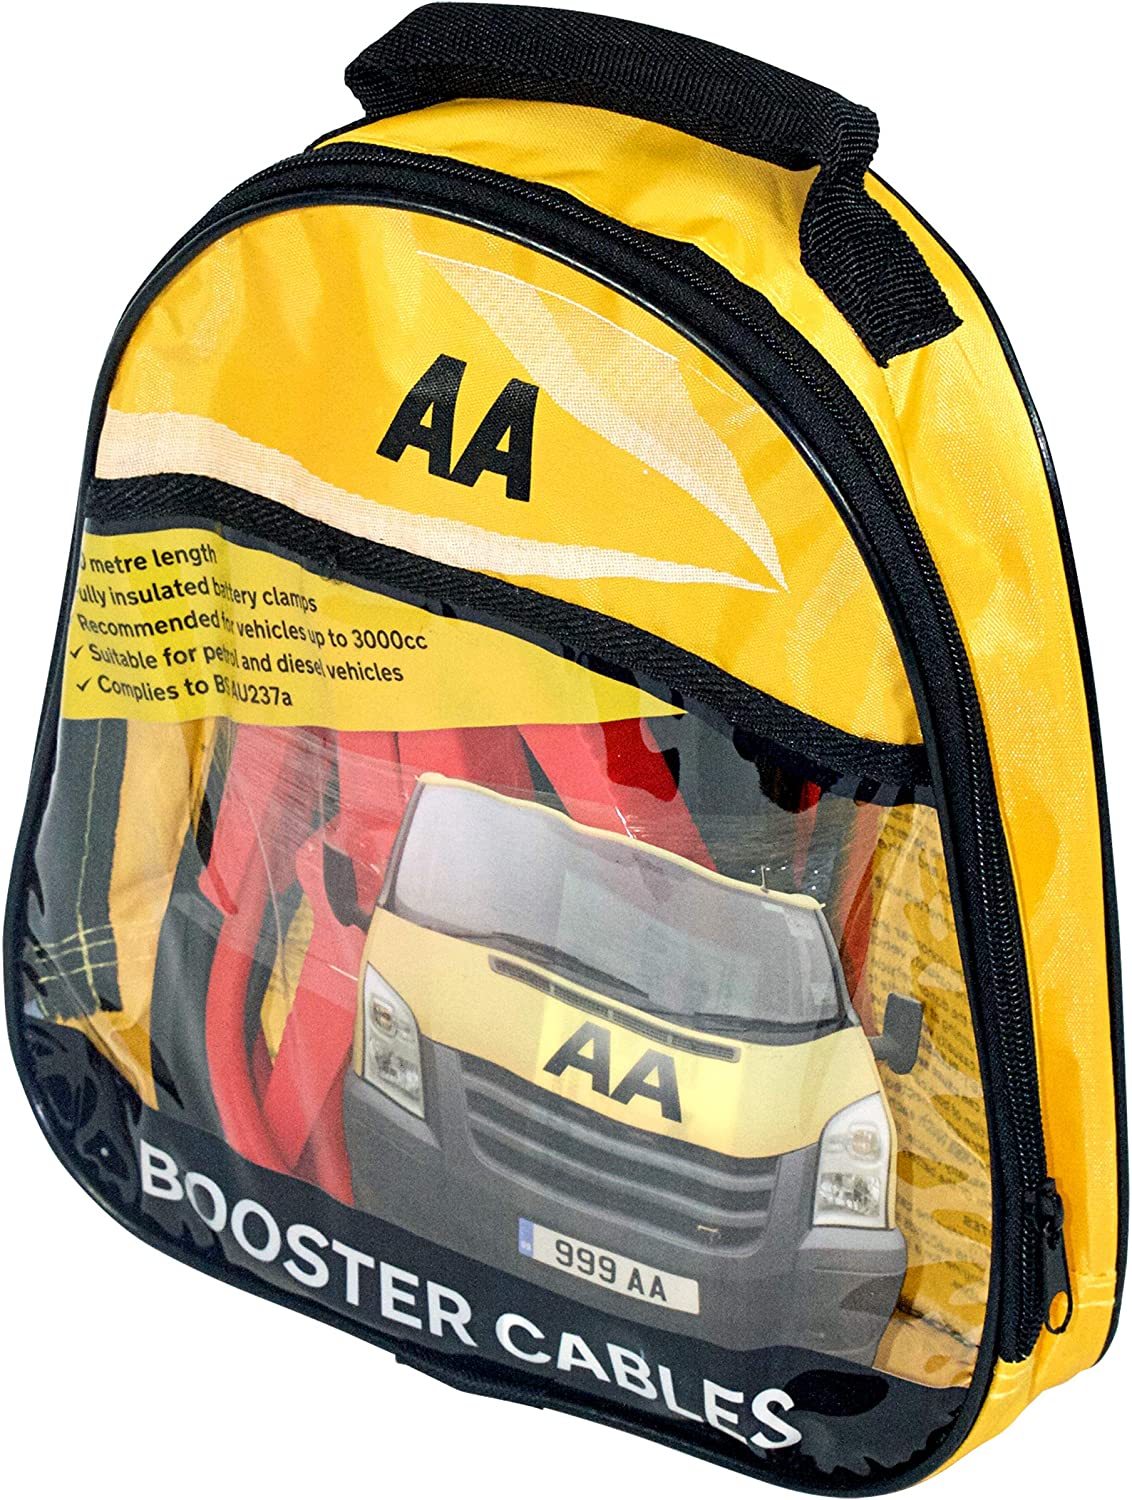 AA Car Van Jump Leads Start Up Booster Power Cables 3 Metres Long Up to 3000cc